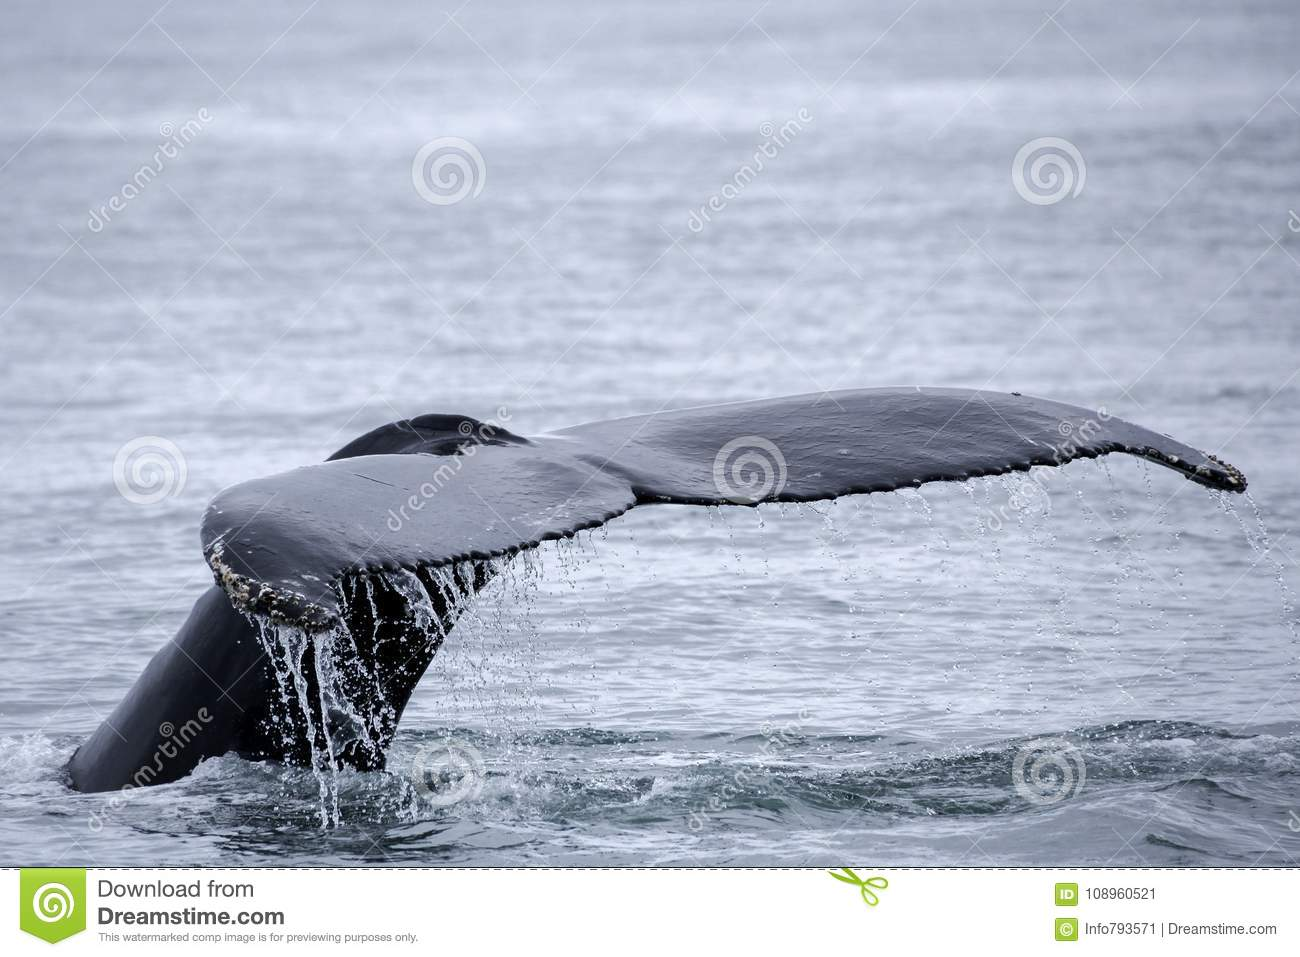 Tail fin of the mighty humpback whale